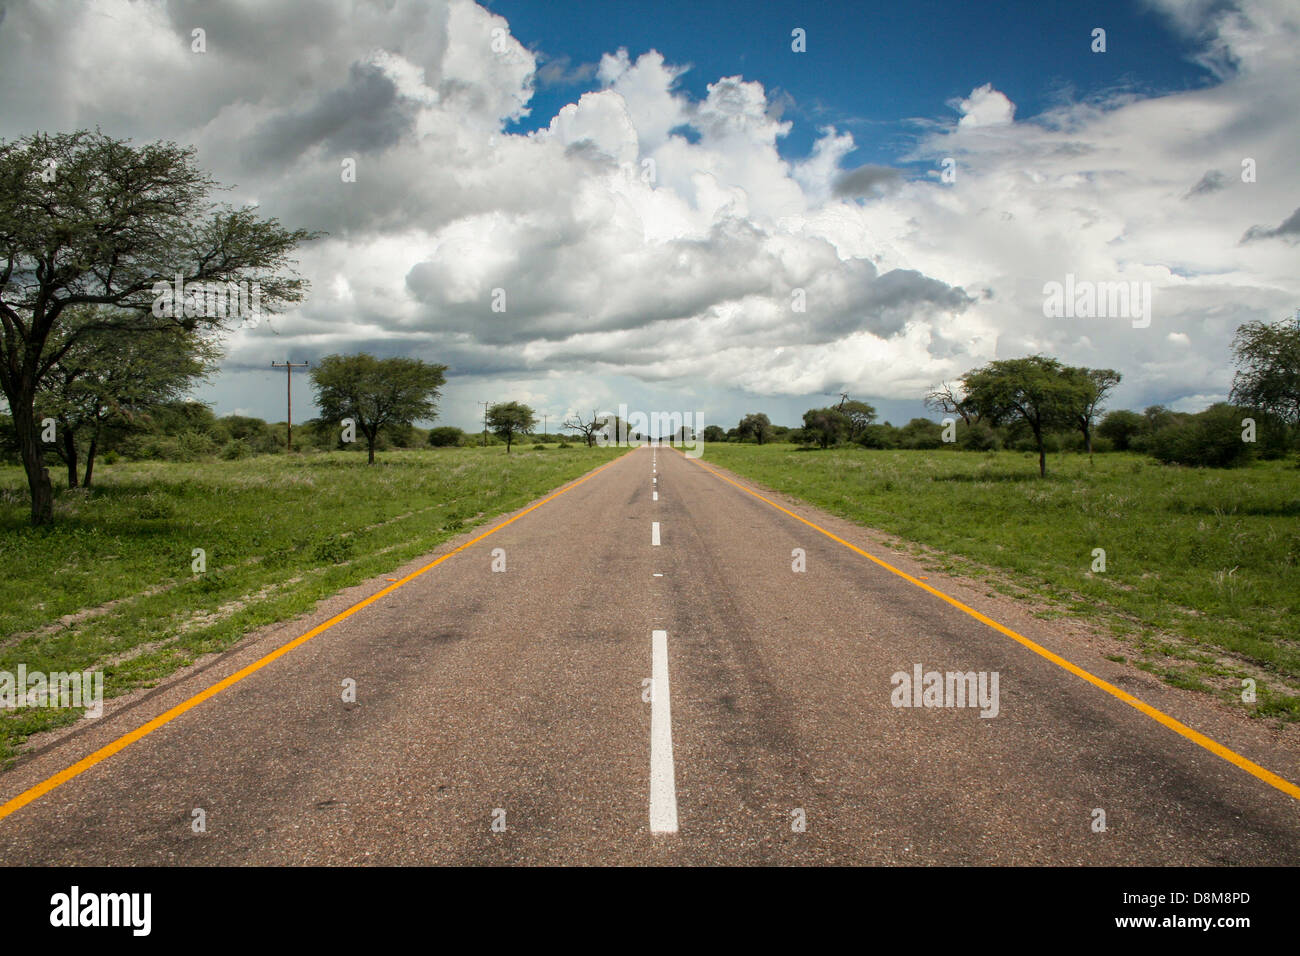 A cloudy day on the road in Botswana - Stock Image